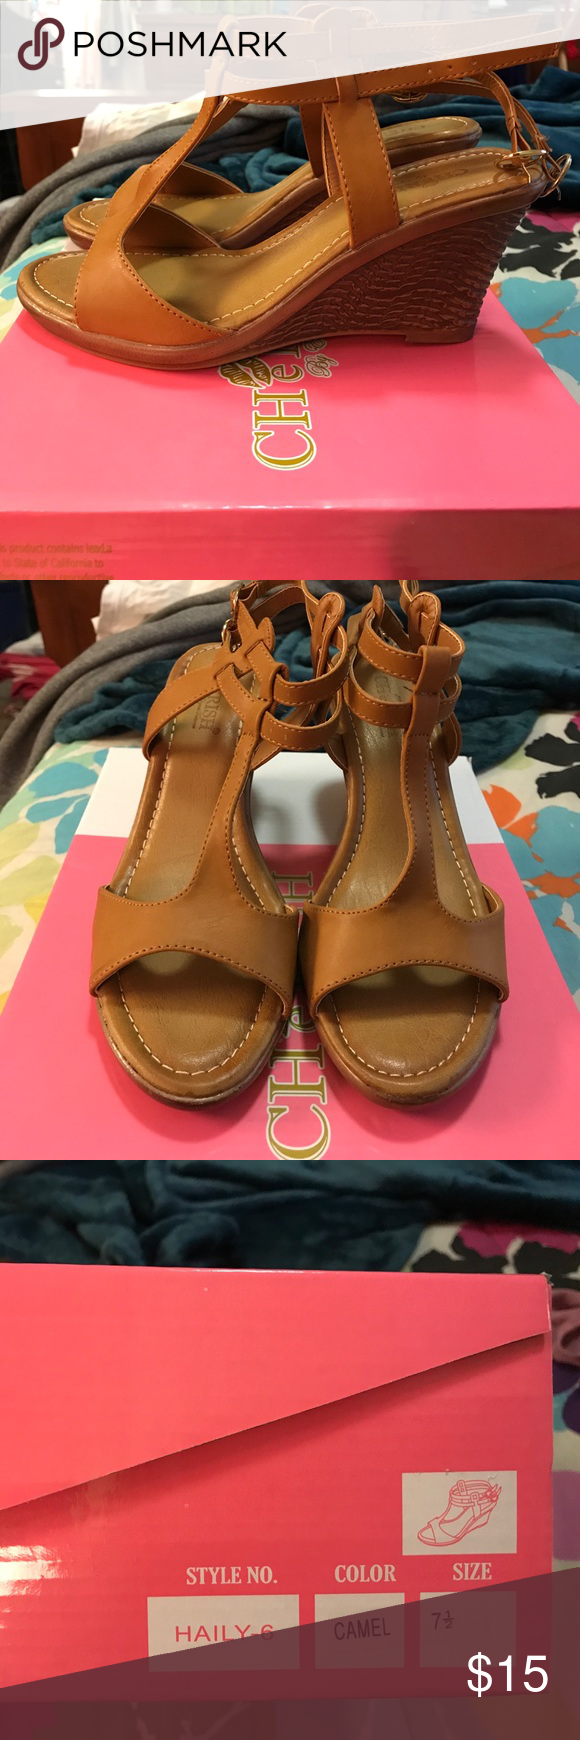 NEW Haily Wedge Sandal 7.5 by Elegant Footwear Never worn wedges; still in box! Bought last summer from Nordstrom rack and never wore them. Color: Camel. Size: 7.5. Elegant Footwear Shoes Wedges